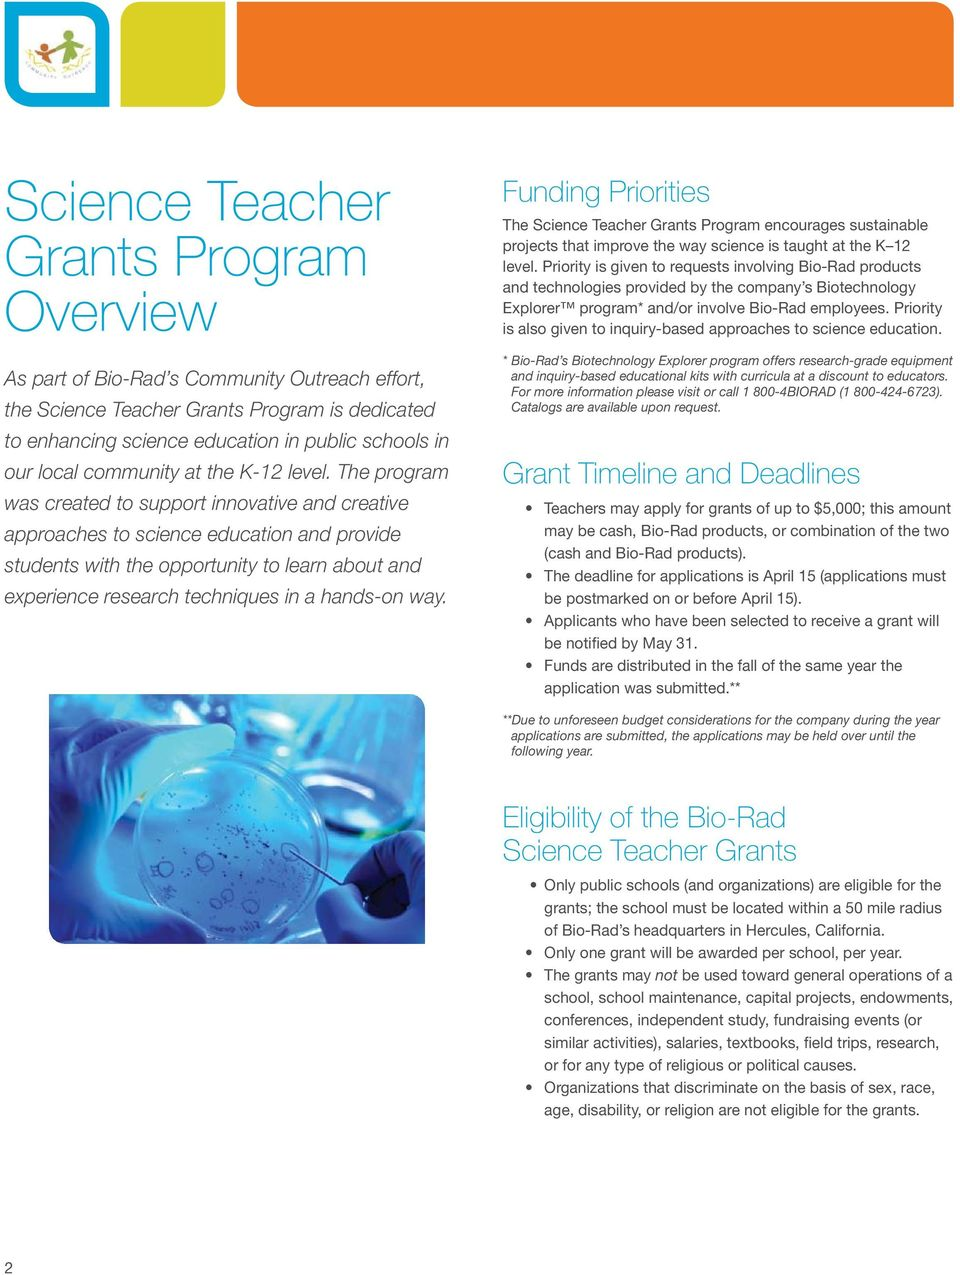 The program was created to support innovative and creative approaches to science education and provide students with the opportunity to learn about and experience research techniques in a hands-on